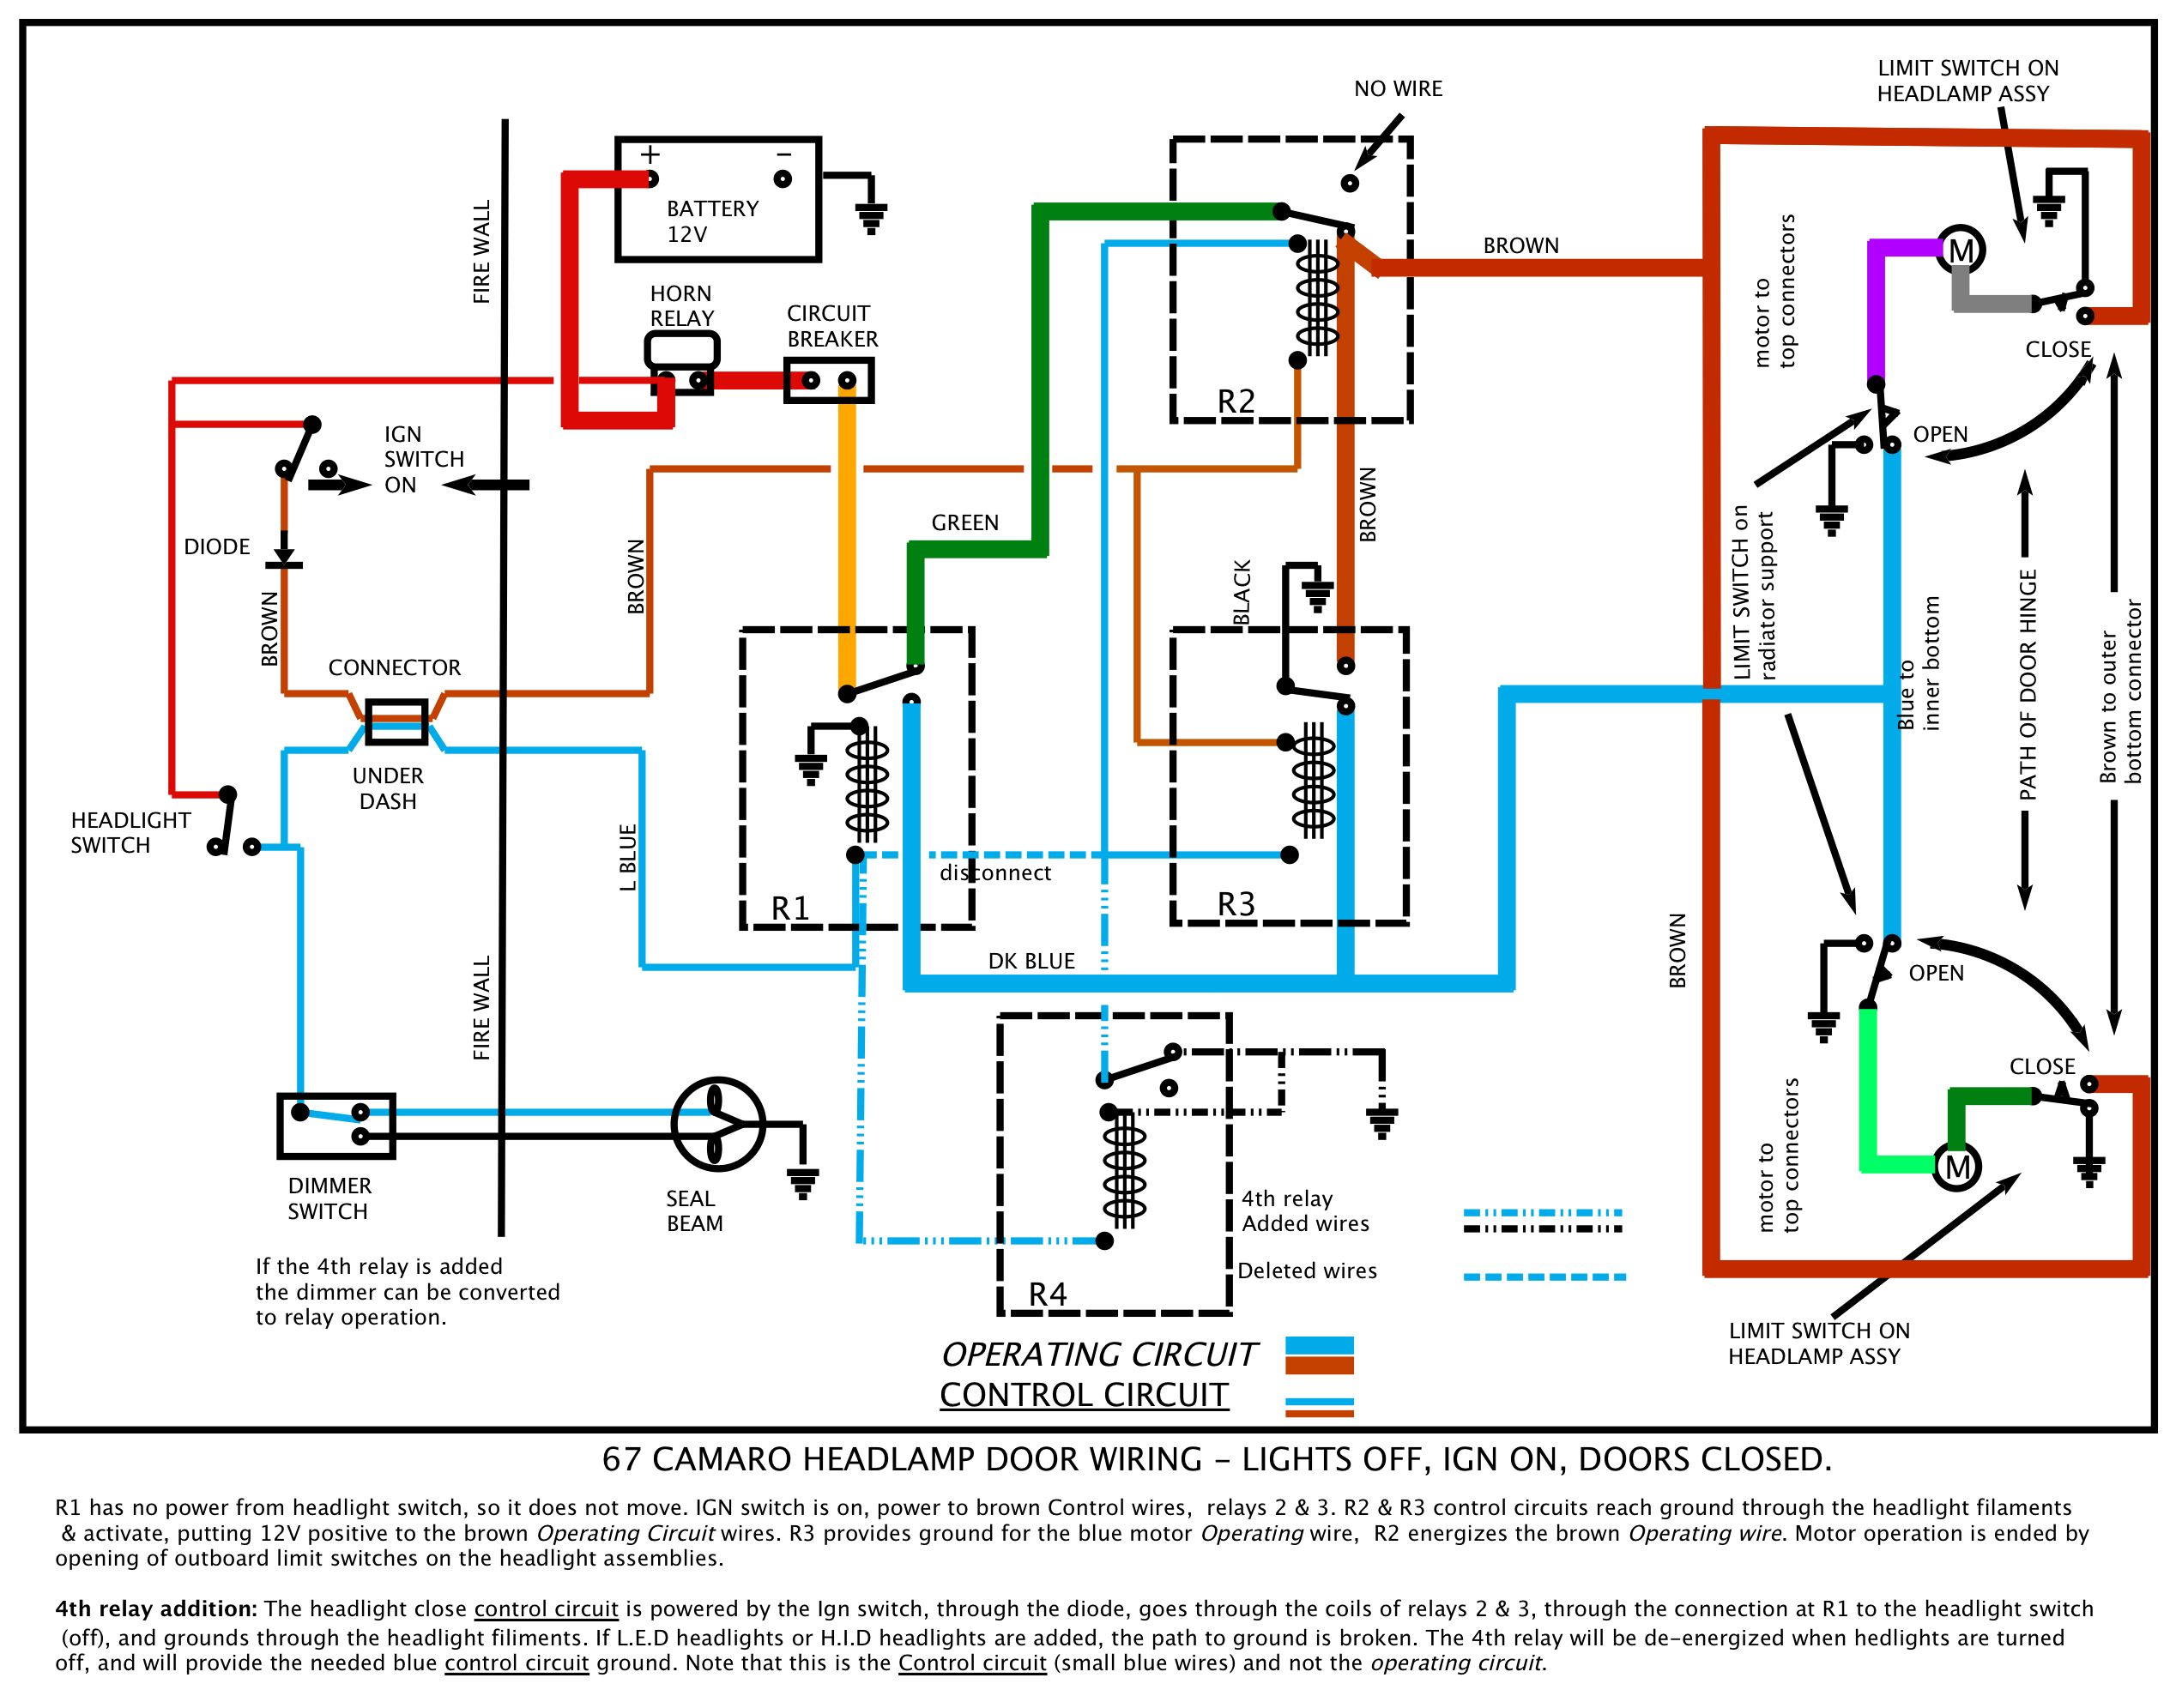 Headlight Wiring Diagram Pdf - Data Wiring Diagram on home electrical wiring pdf, water heater diagram pdf, electrical symbols pdf, electrical block diagram pdf, floor plan pdf, electrical wiring blueprint pdf, electrical diagram symbols, electrical training boards, basic electrical wiring pdf,